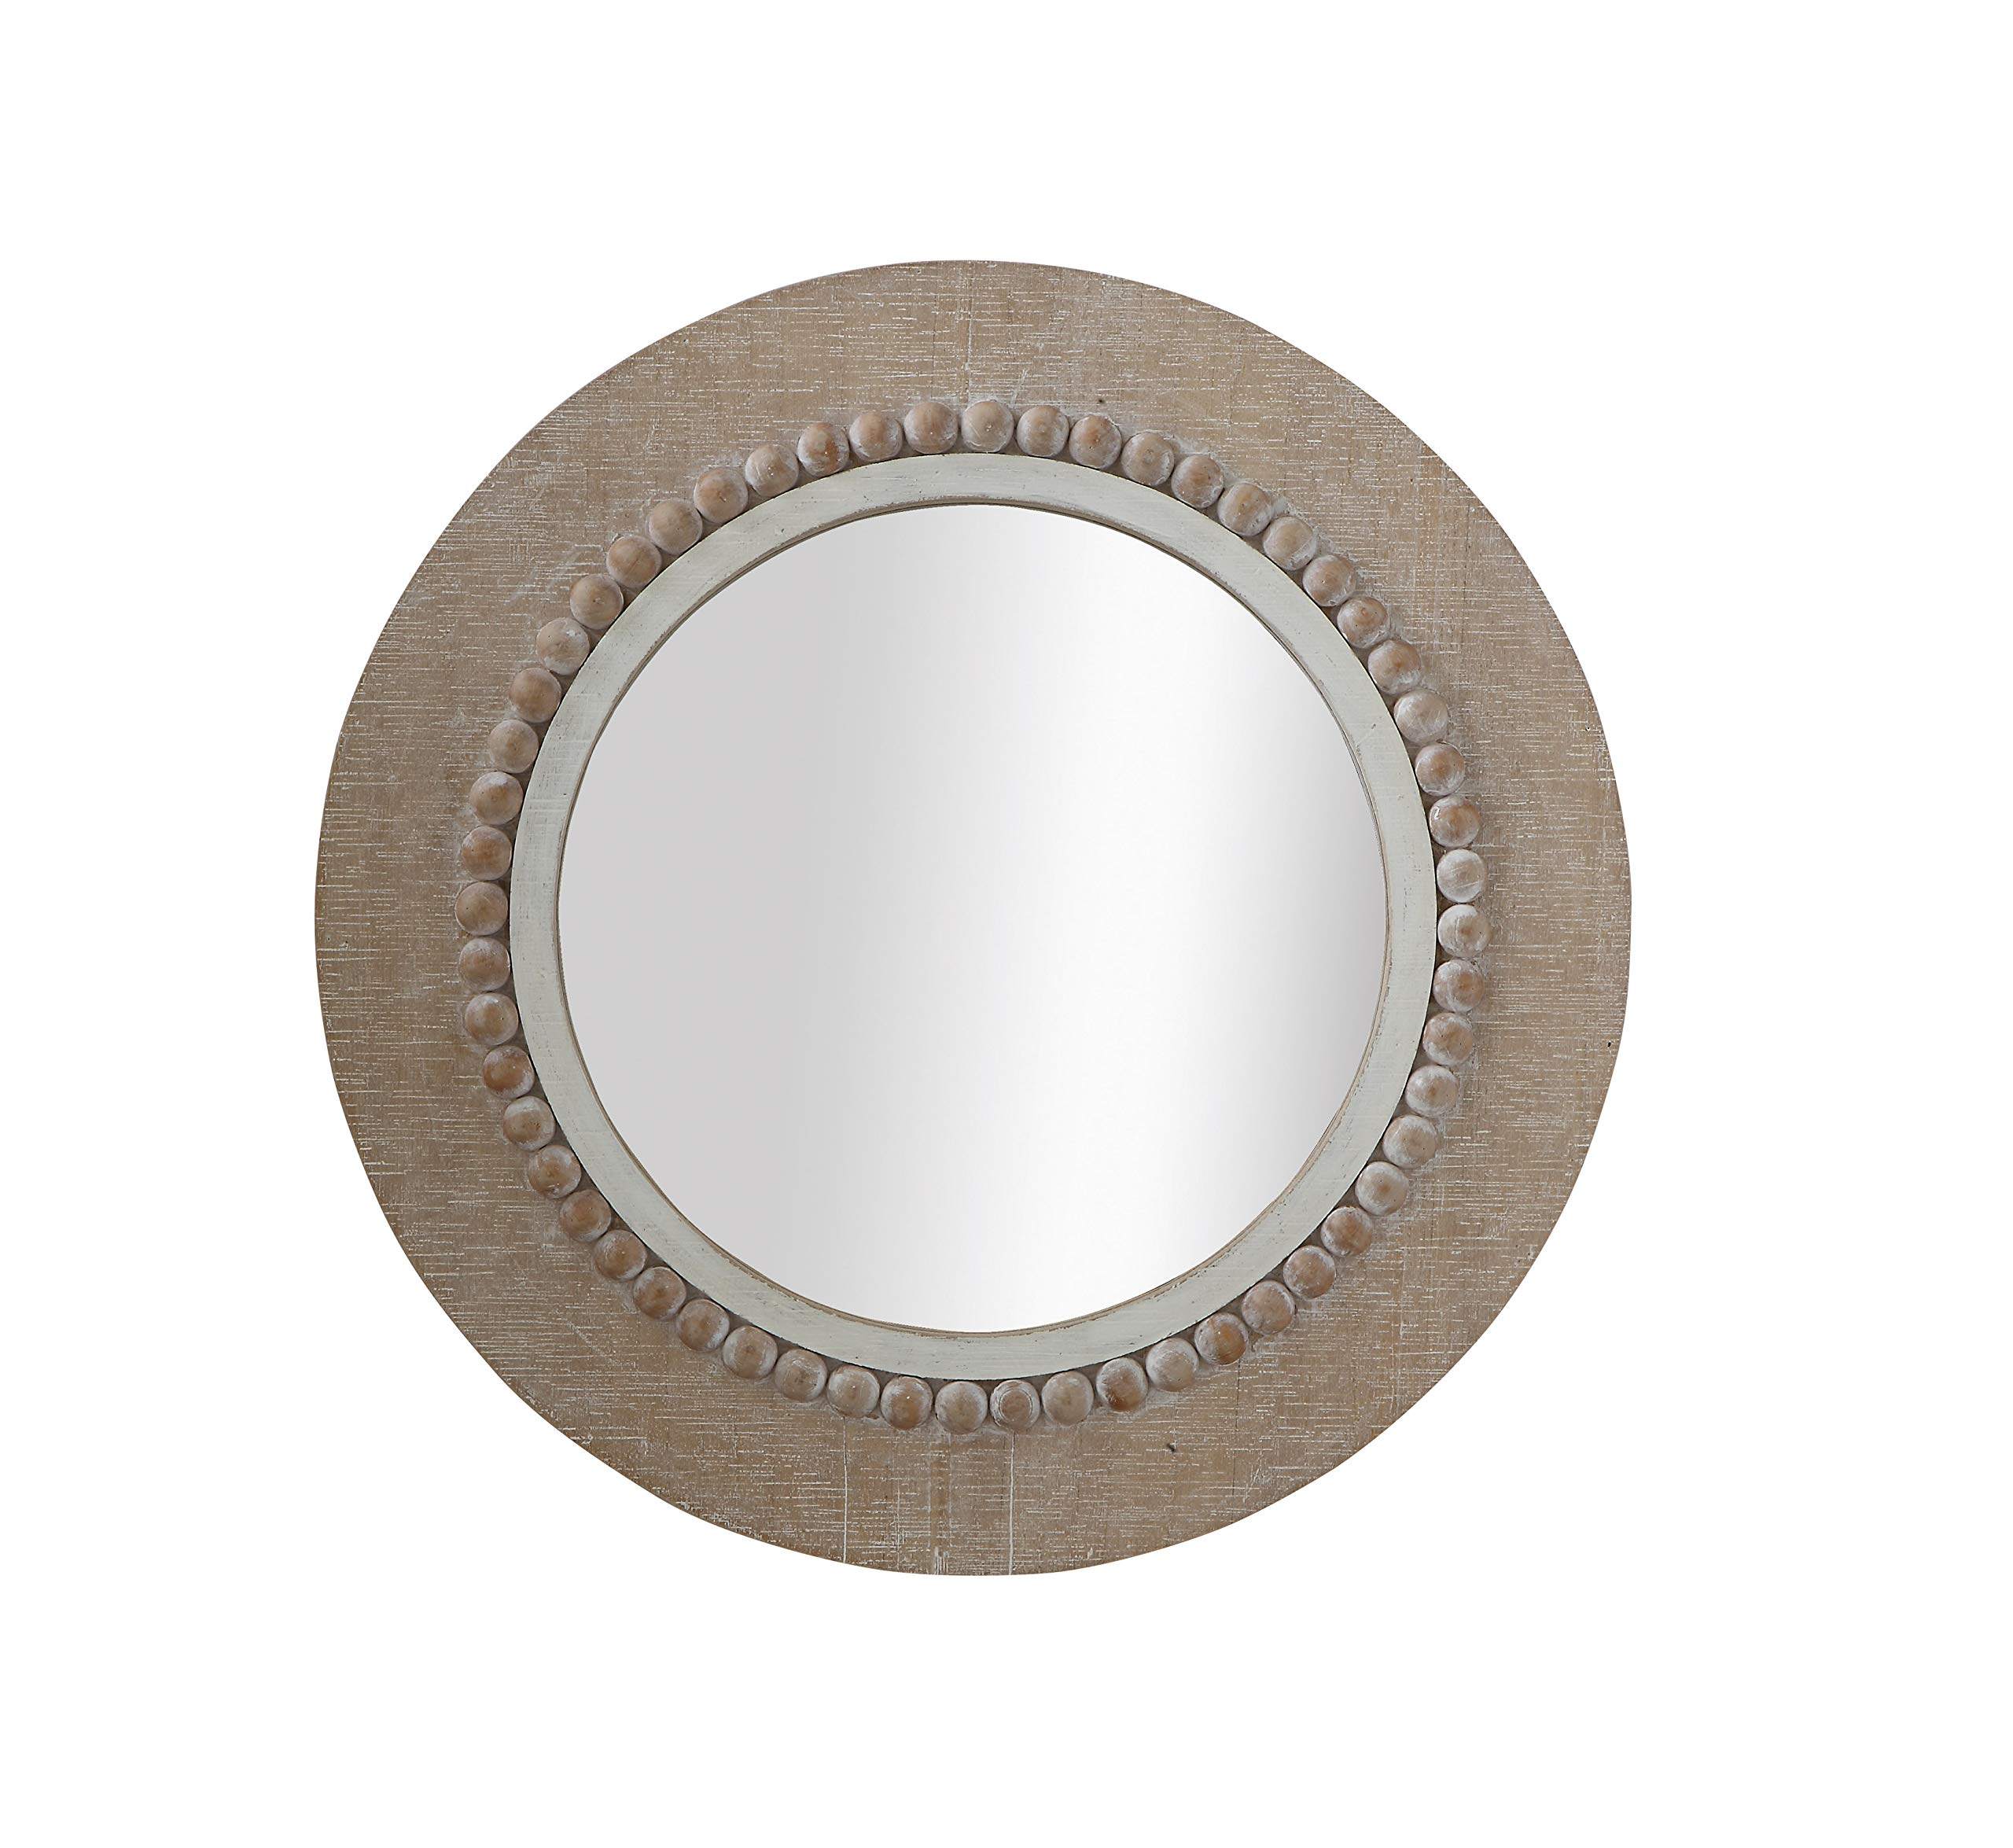 Creative Co-Op DF0224 Round Decorative Wood Wall Mirror